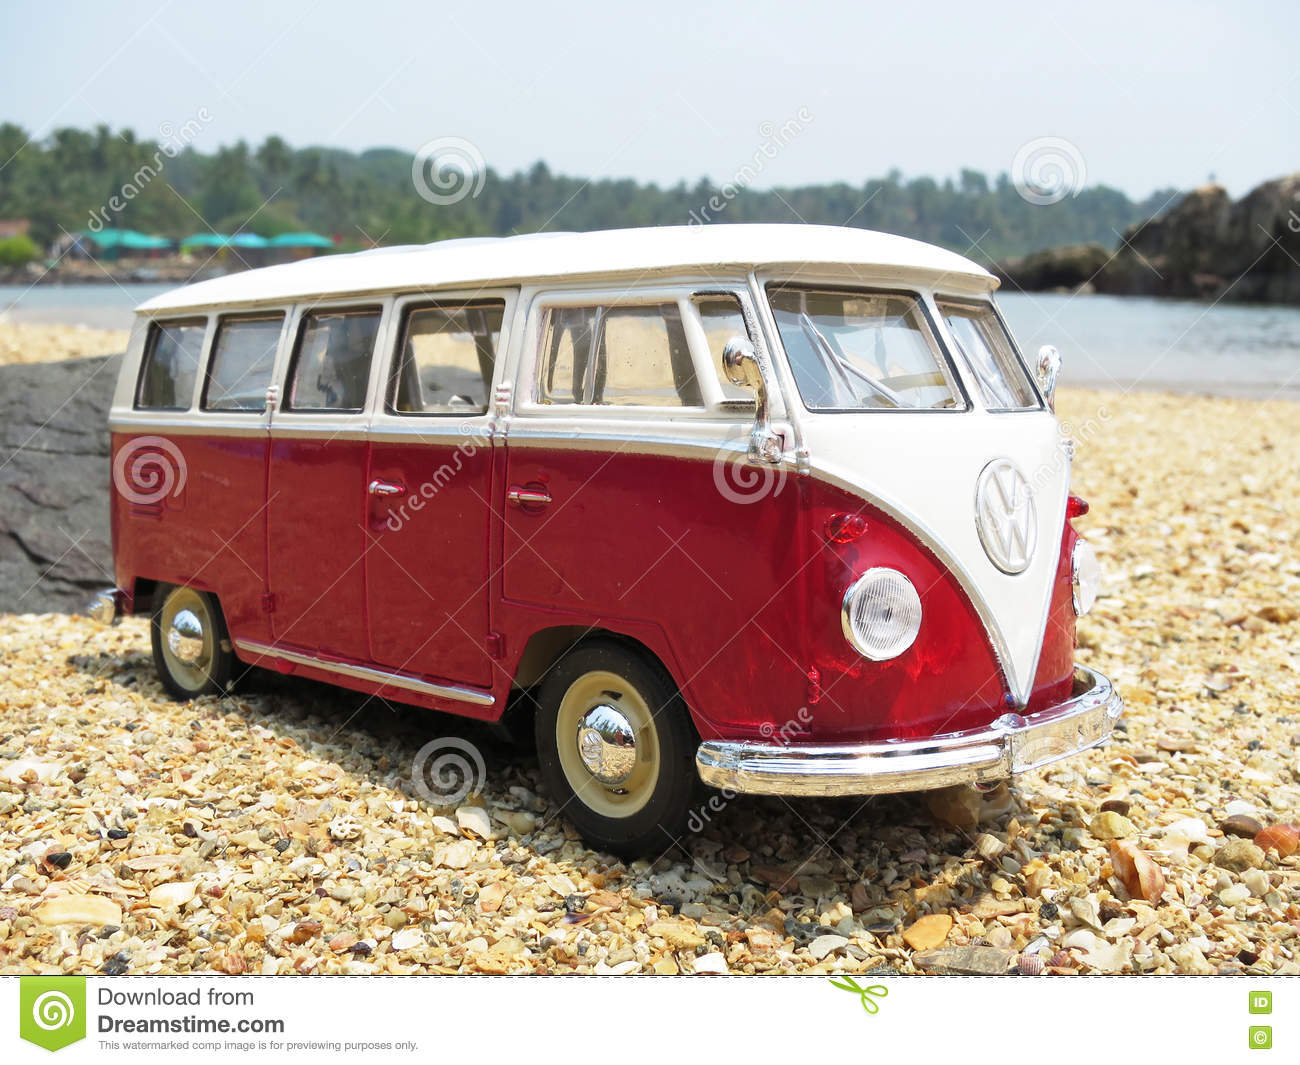 miniature vw bulli 1962 on the beach editorial photography. Black Bedroom Furniture Sets. Home Design Ideas